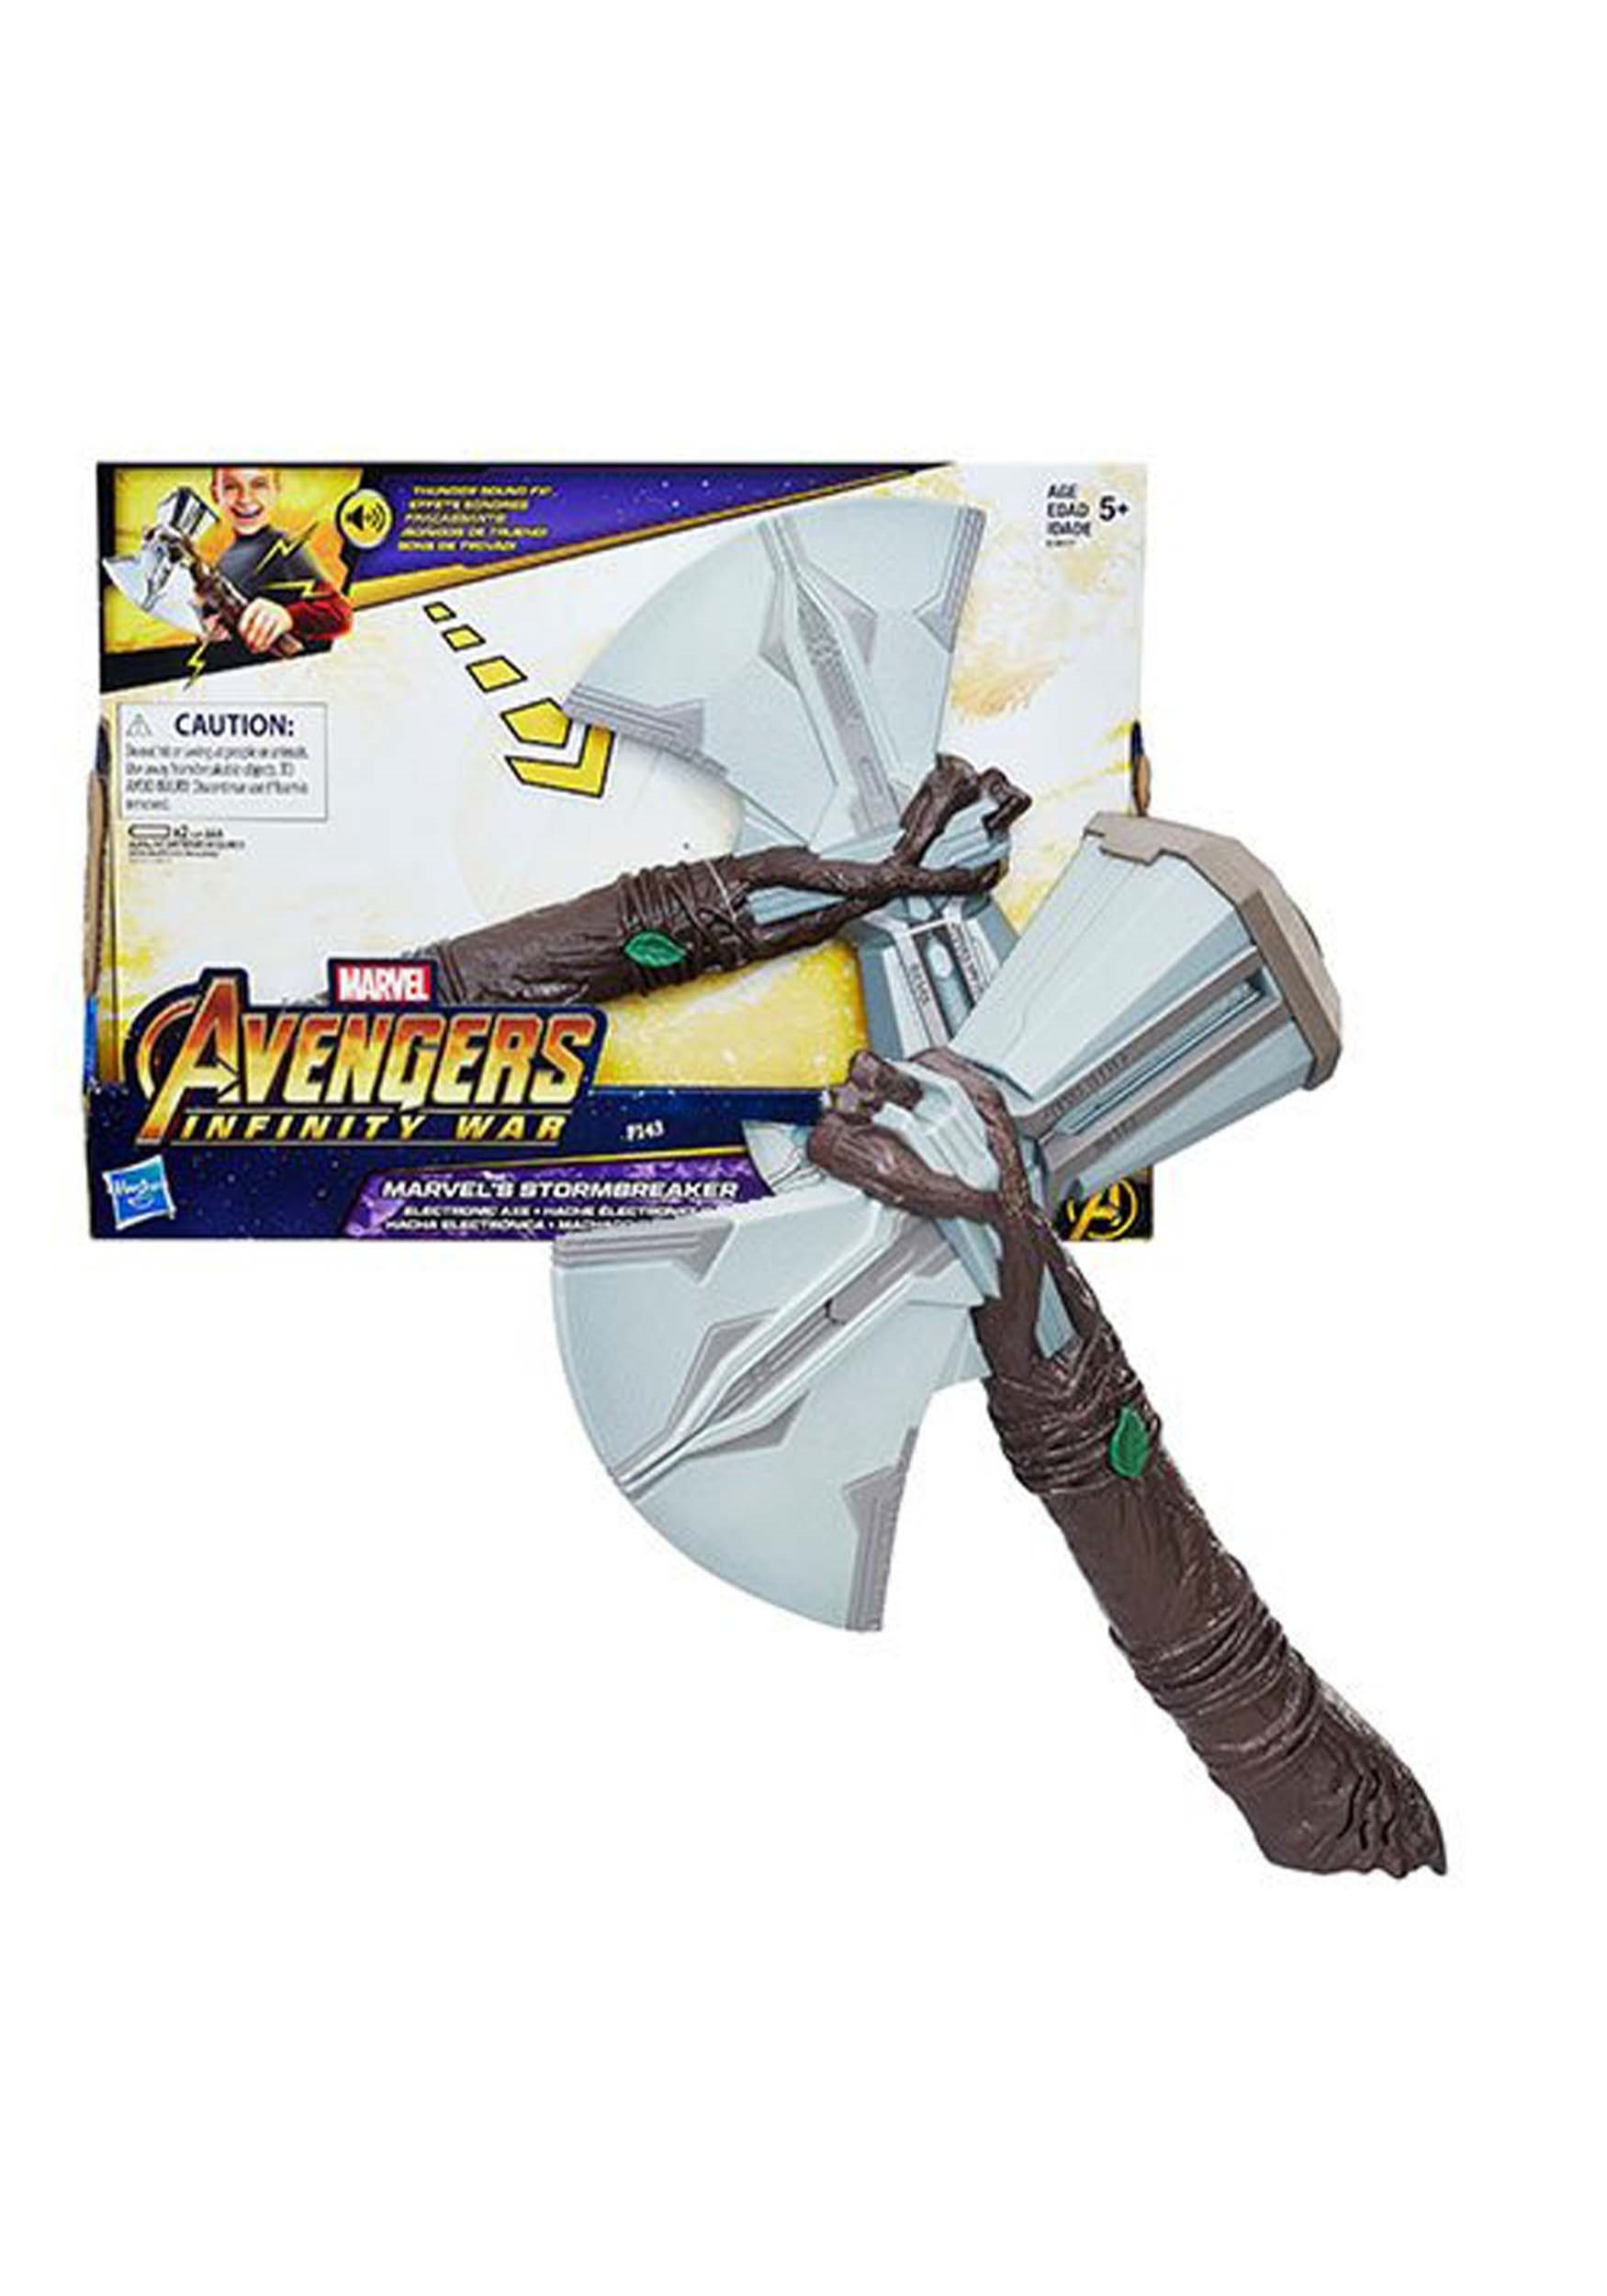 Avengers Infinity War THOR STORMBREAKER Electronic Sound Effects Hammer Axe Toy